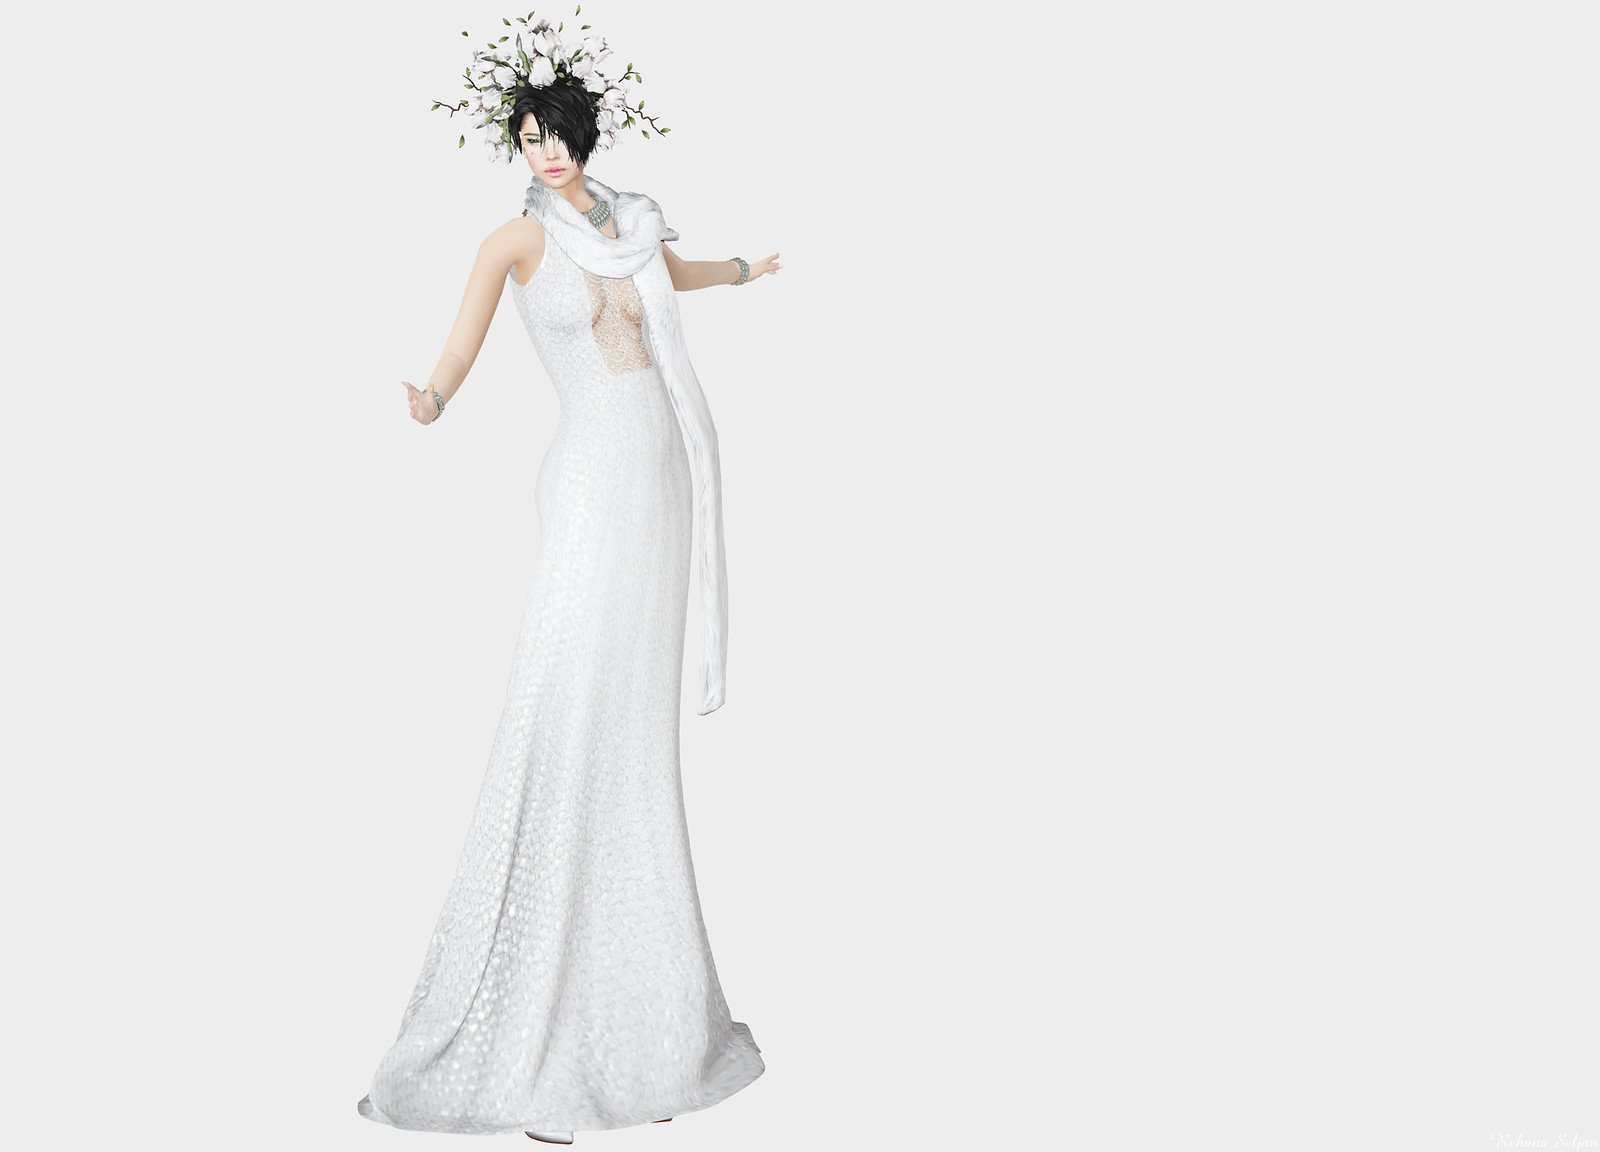 Armony - Mystique Gown Bridal